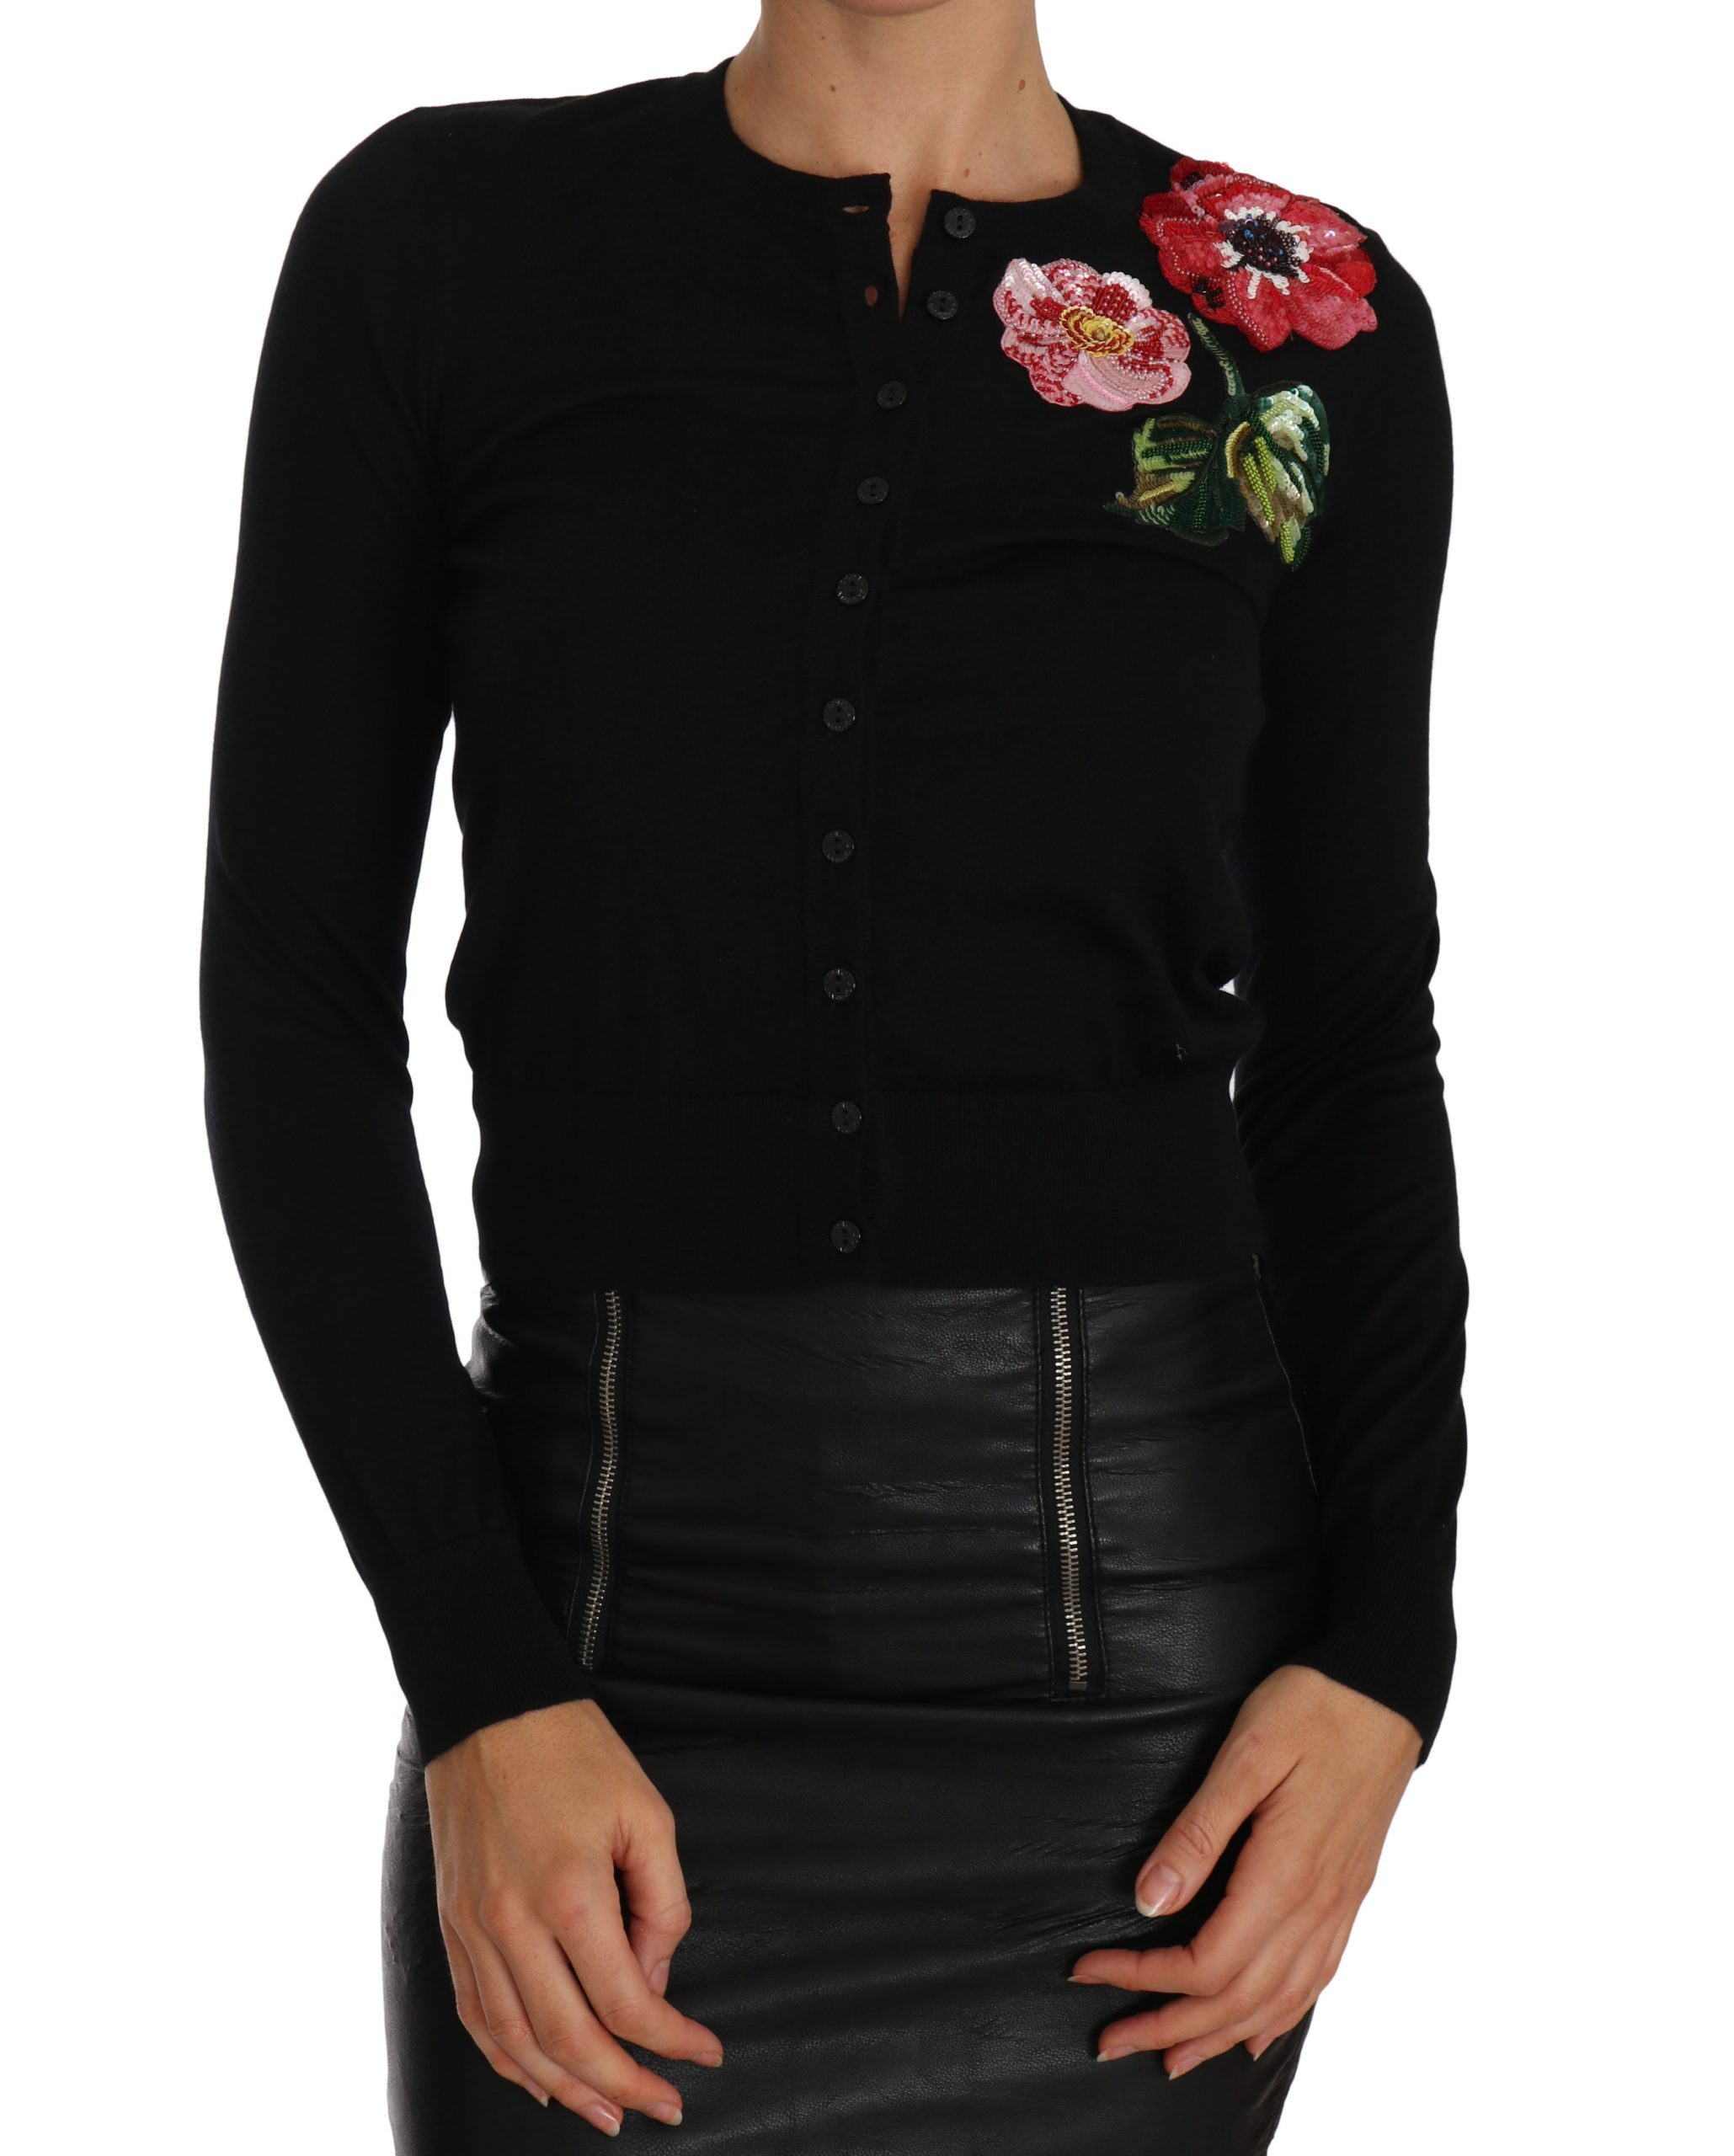 Dolce & Gabbana Women's Floral Embroidered Cardigan Black TSH2301 - IT40 S